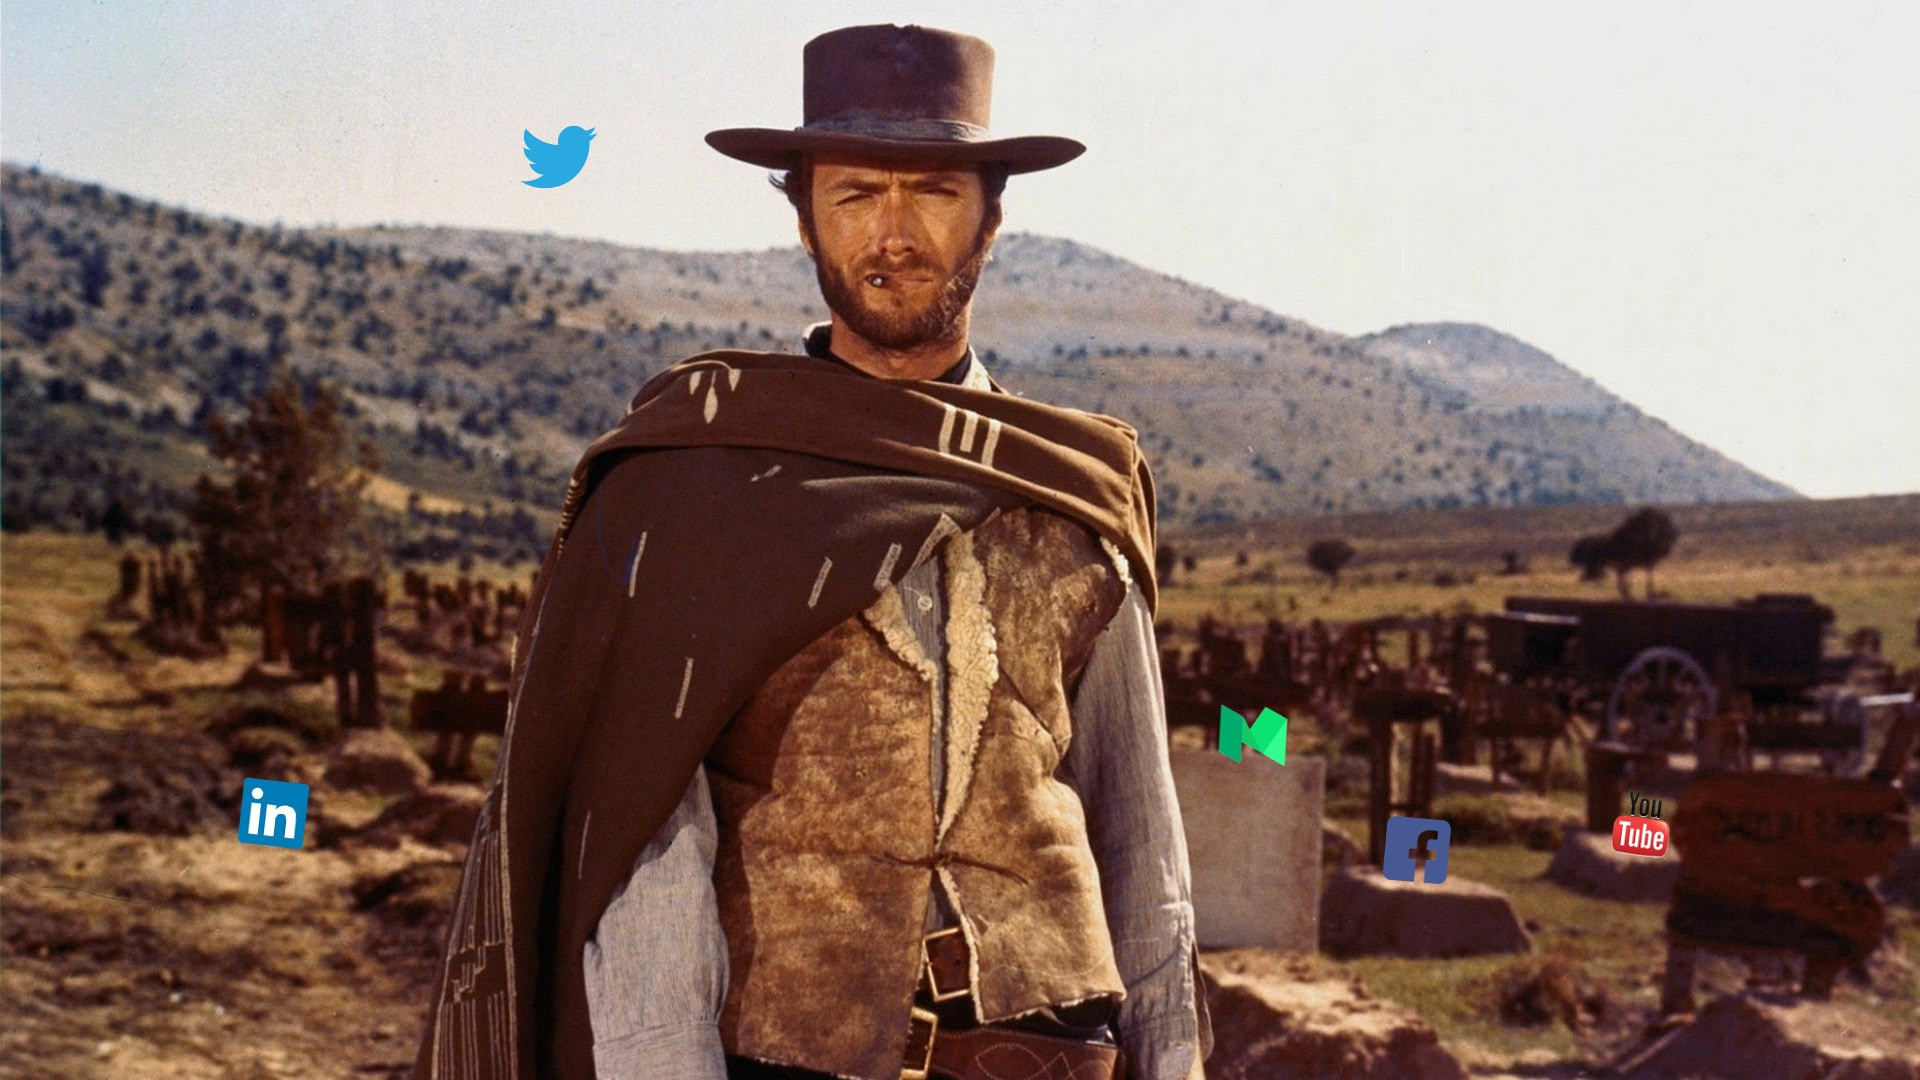 Social media re-branding—the good, the bad and the ugly